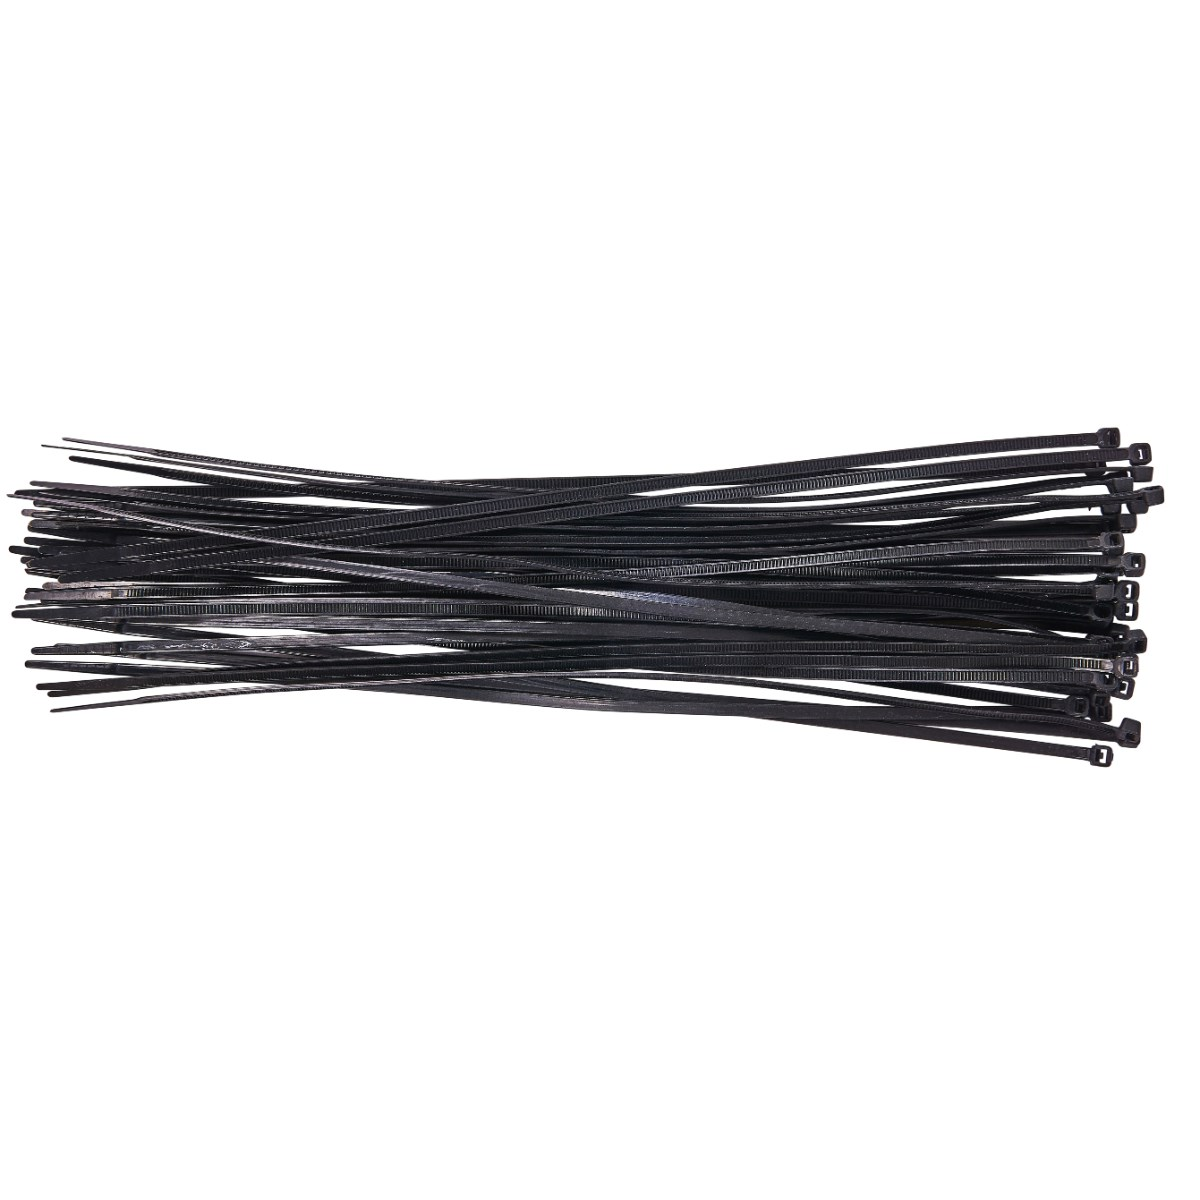 Cable Tie 3.6 X 300Mm 40Pc Black Amtech S0688b